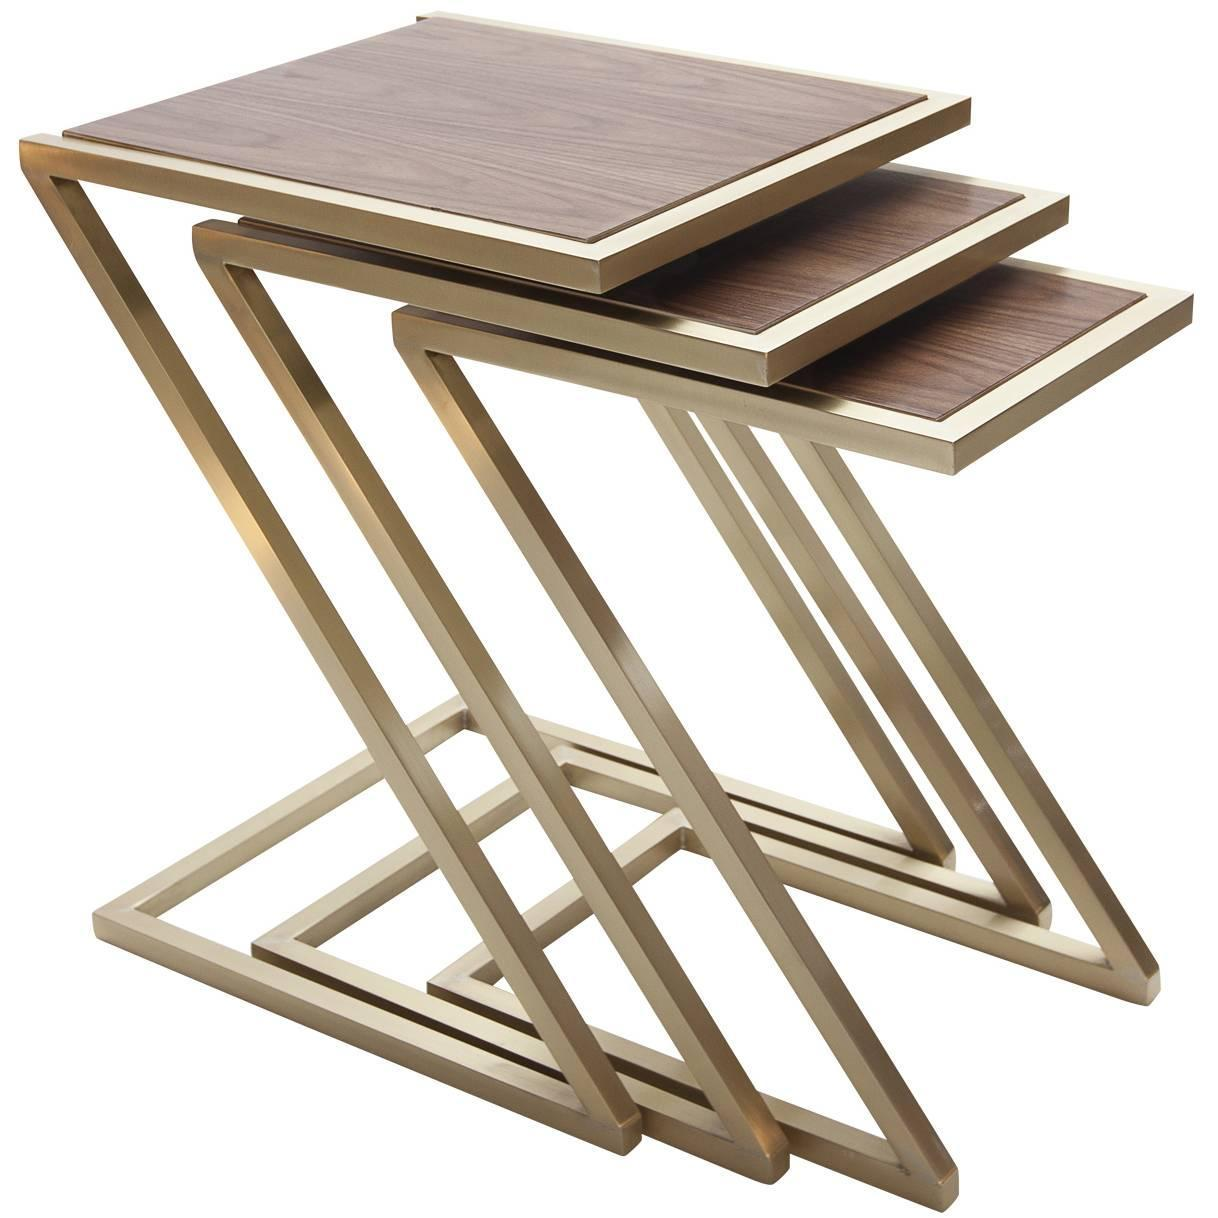 Wood Nesting Tables For Sale At 1stdibs. Full resolution  portraiture, nominally Width 1218 Height 1218 pixels, portraiture with #8D693E.